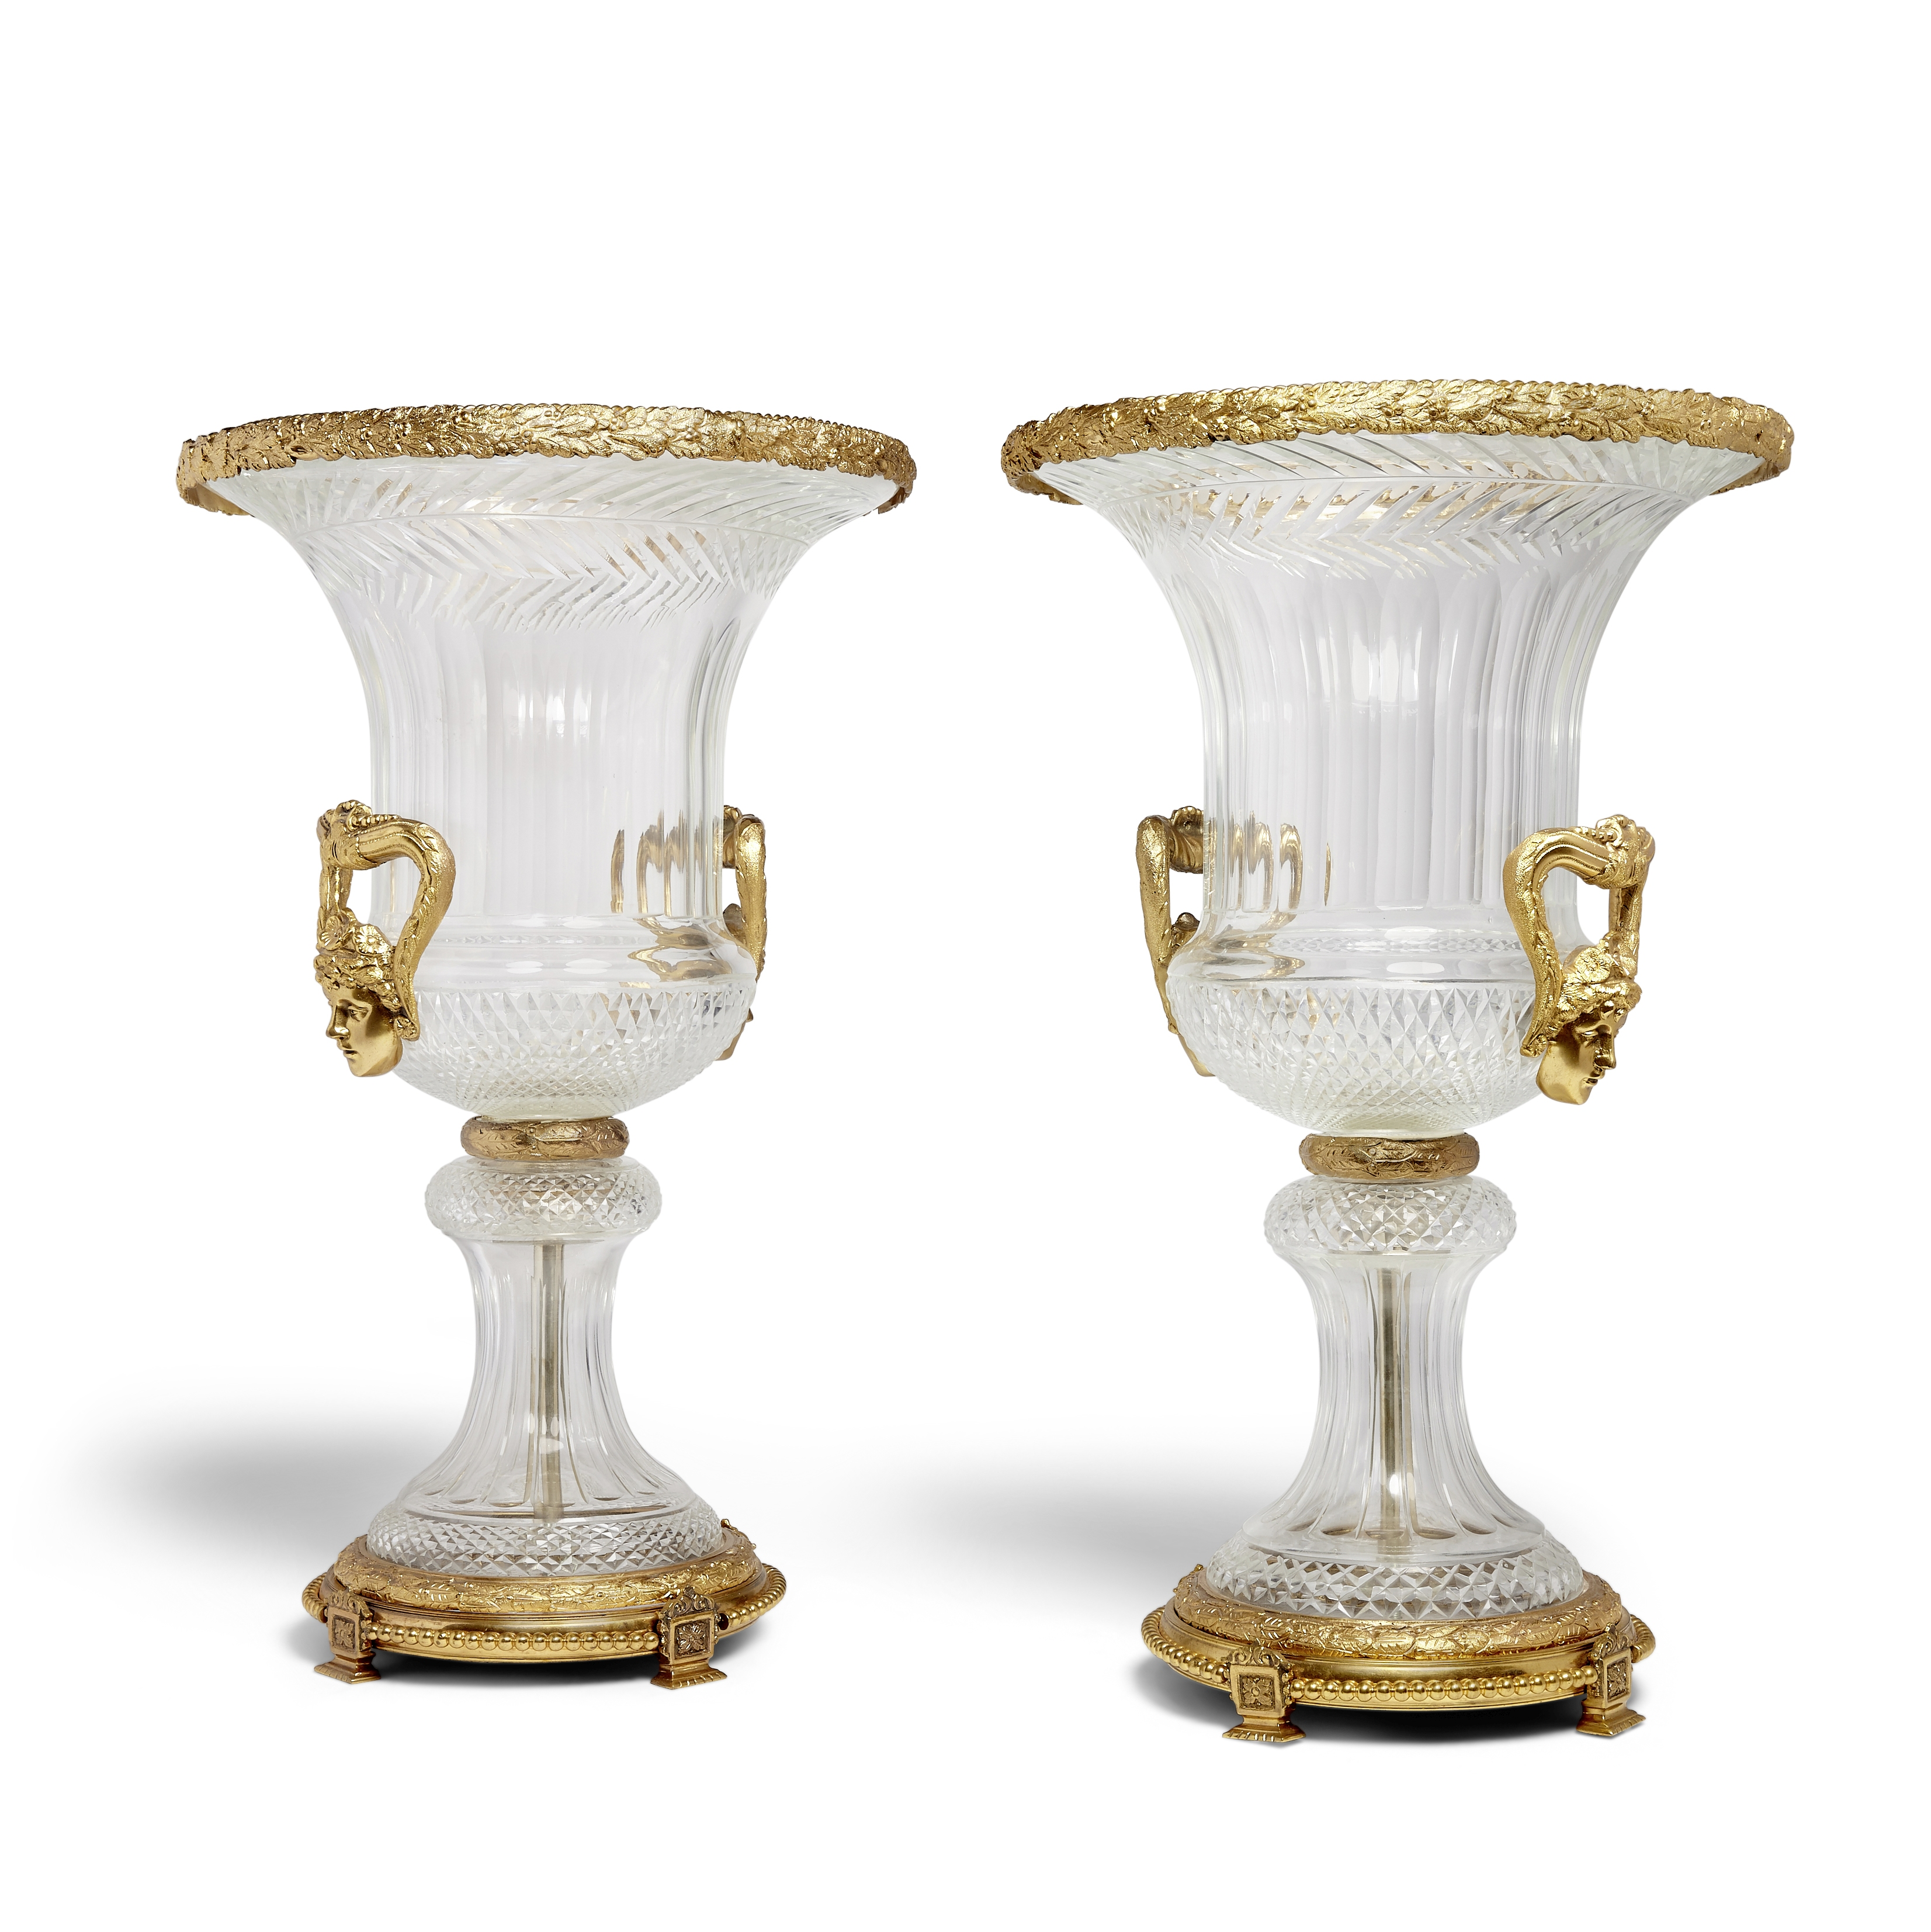 Lot 290 - A Pair of large gilt bronze mounted Baccarat glass urns Late 20th/early 21st century